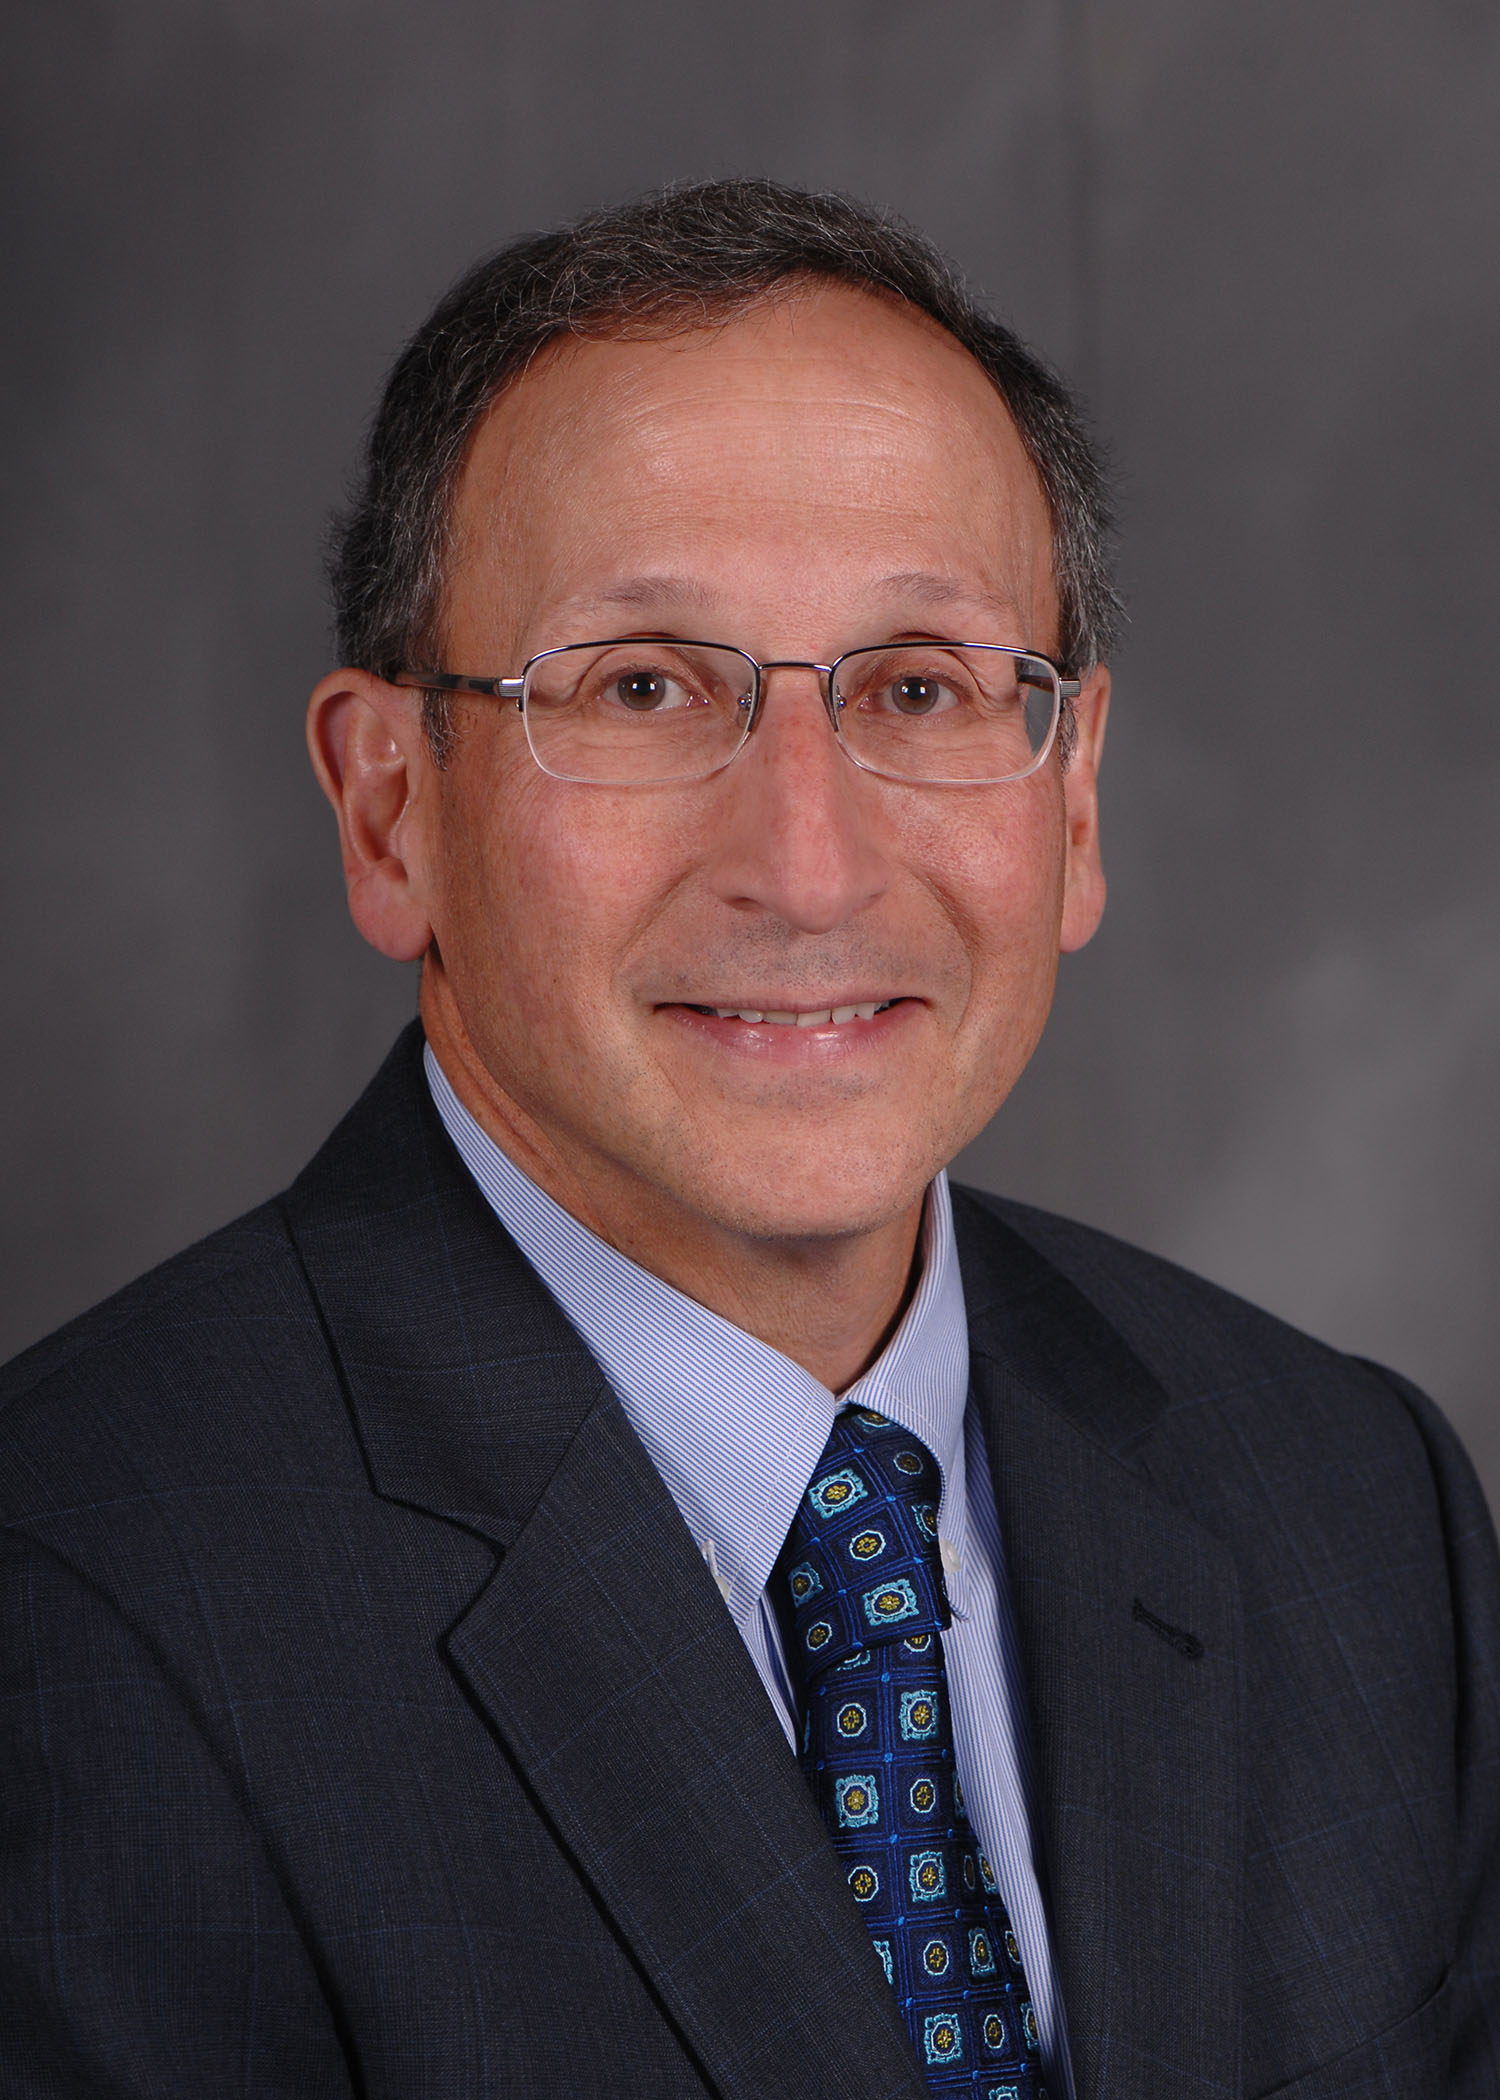 Paul DiCorleto, Vice President for Research